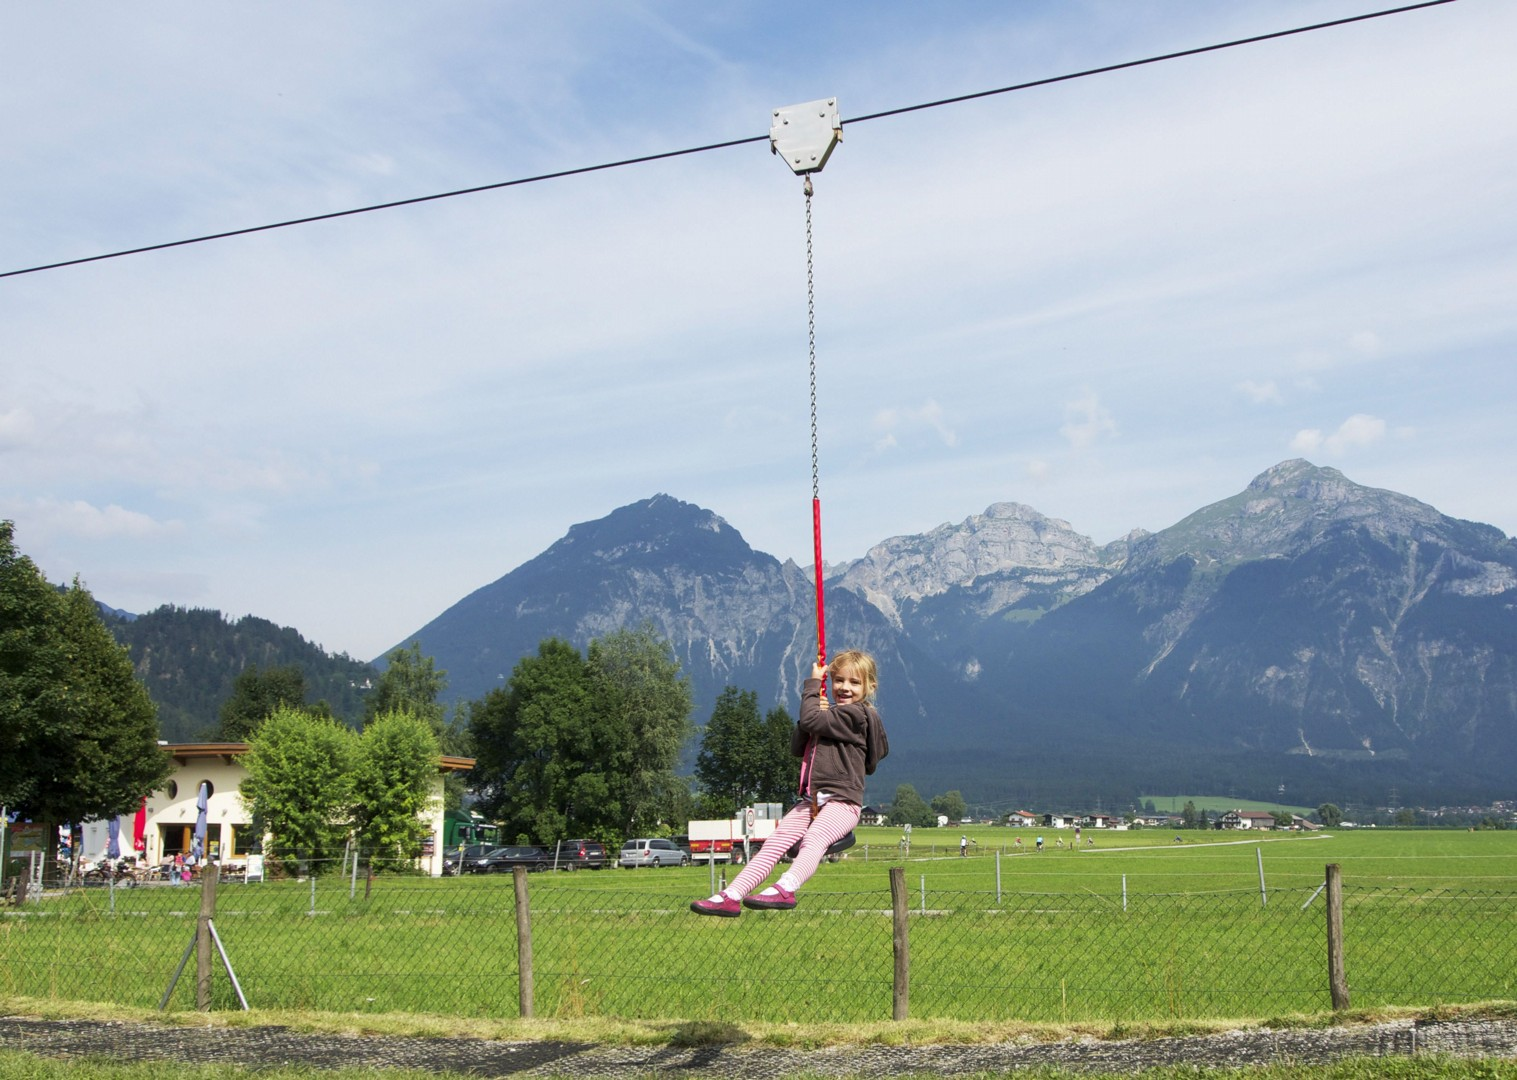 zip-line-family-self-guided-holiday-austria.jpg - Austria - Tyrolean Valleys - Family Cycling